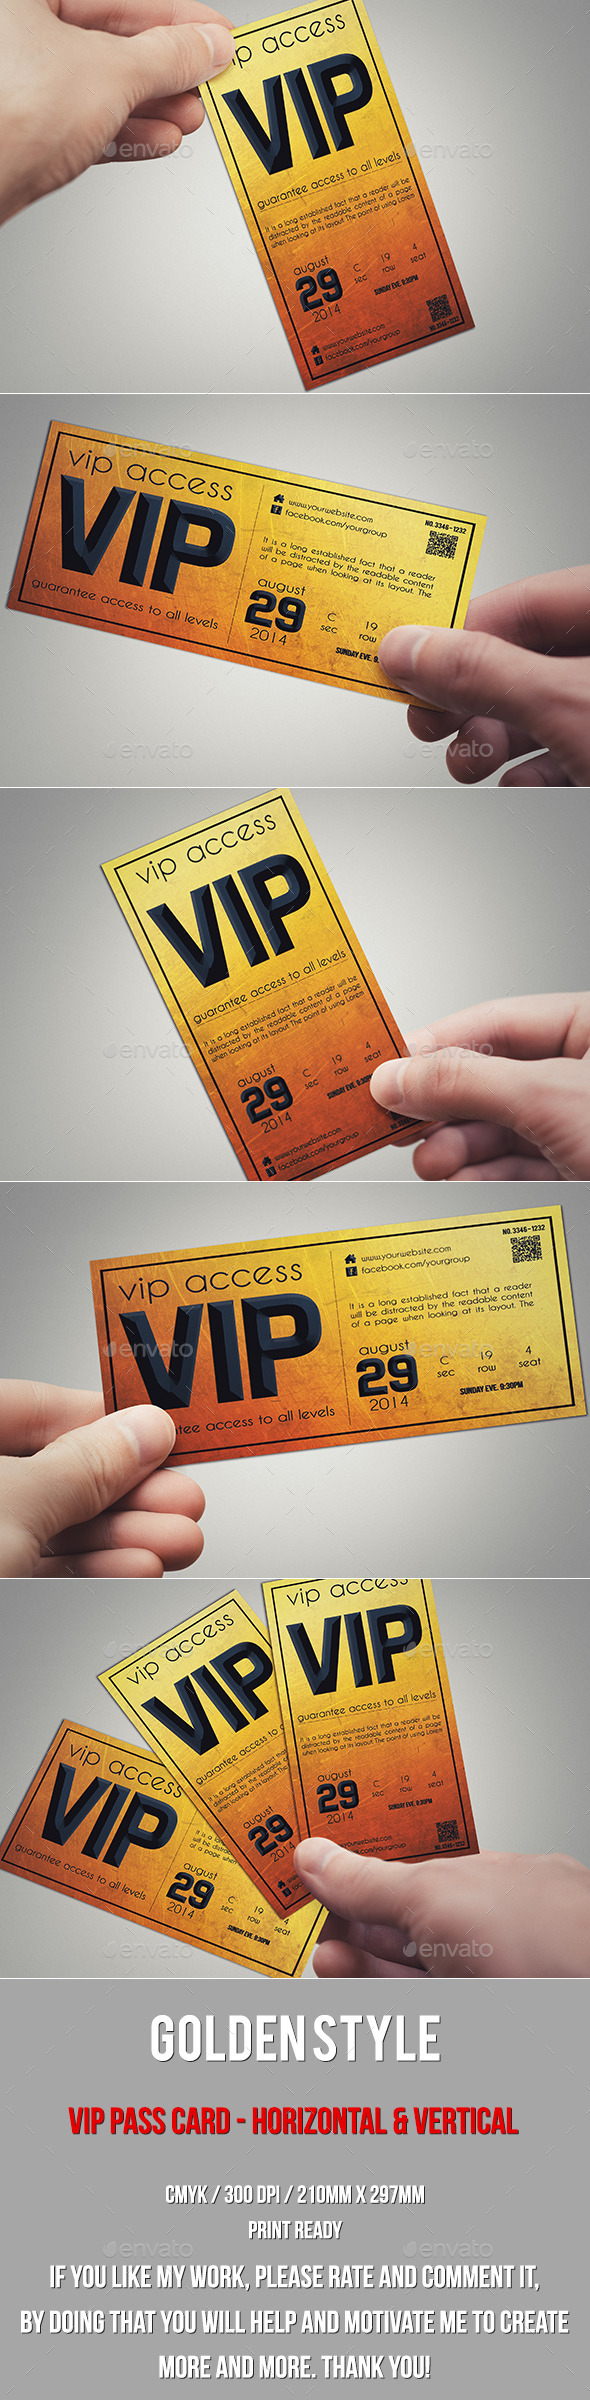 GraphicRiver Golden style vip pass card 10205286